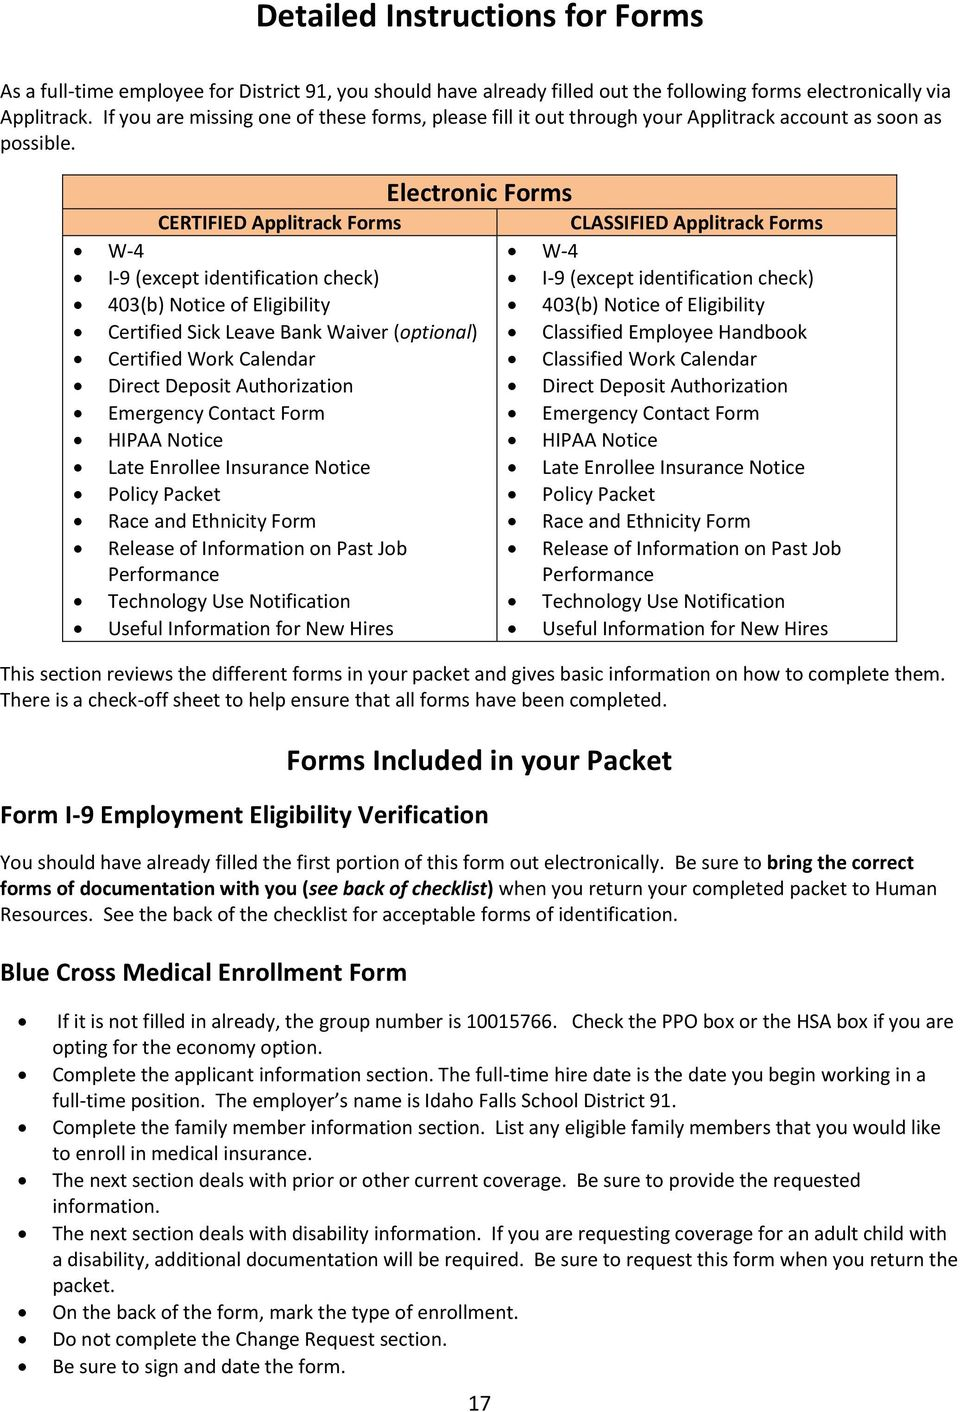 Electronic Forms CERTIFIED Applitrack Forms W-4 I-9 (except identification check) 403(b) Notice of Eligibility Certified Sick Leave Bank Waiver (optional) Certified Work Calendar Direct Deposit